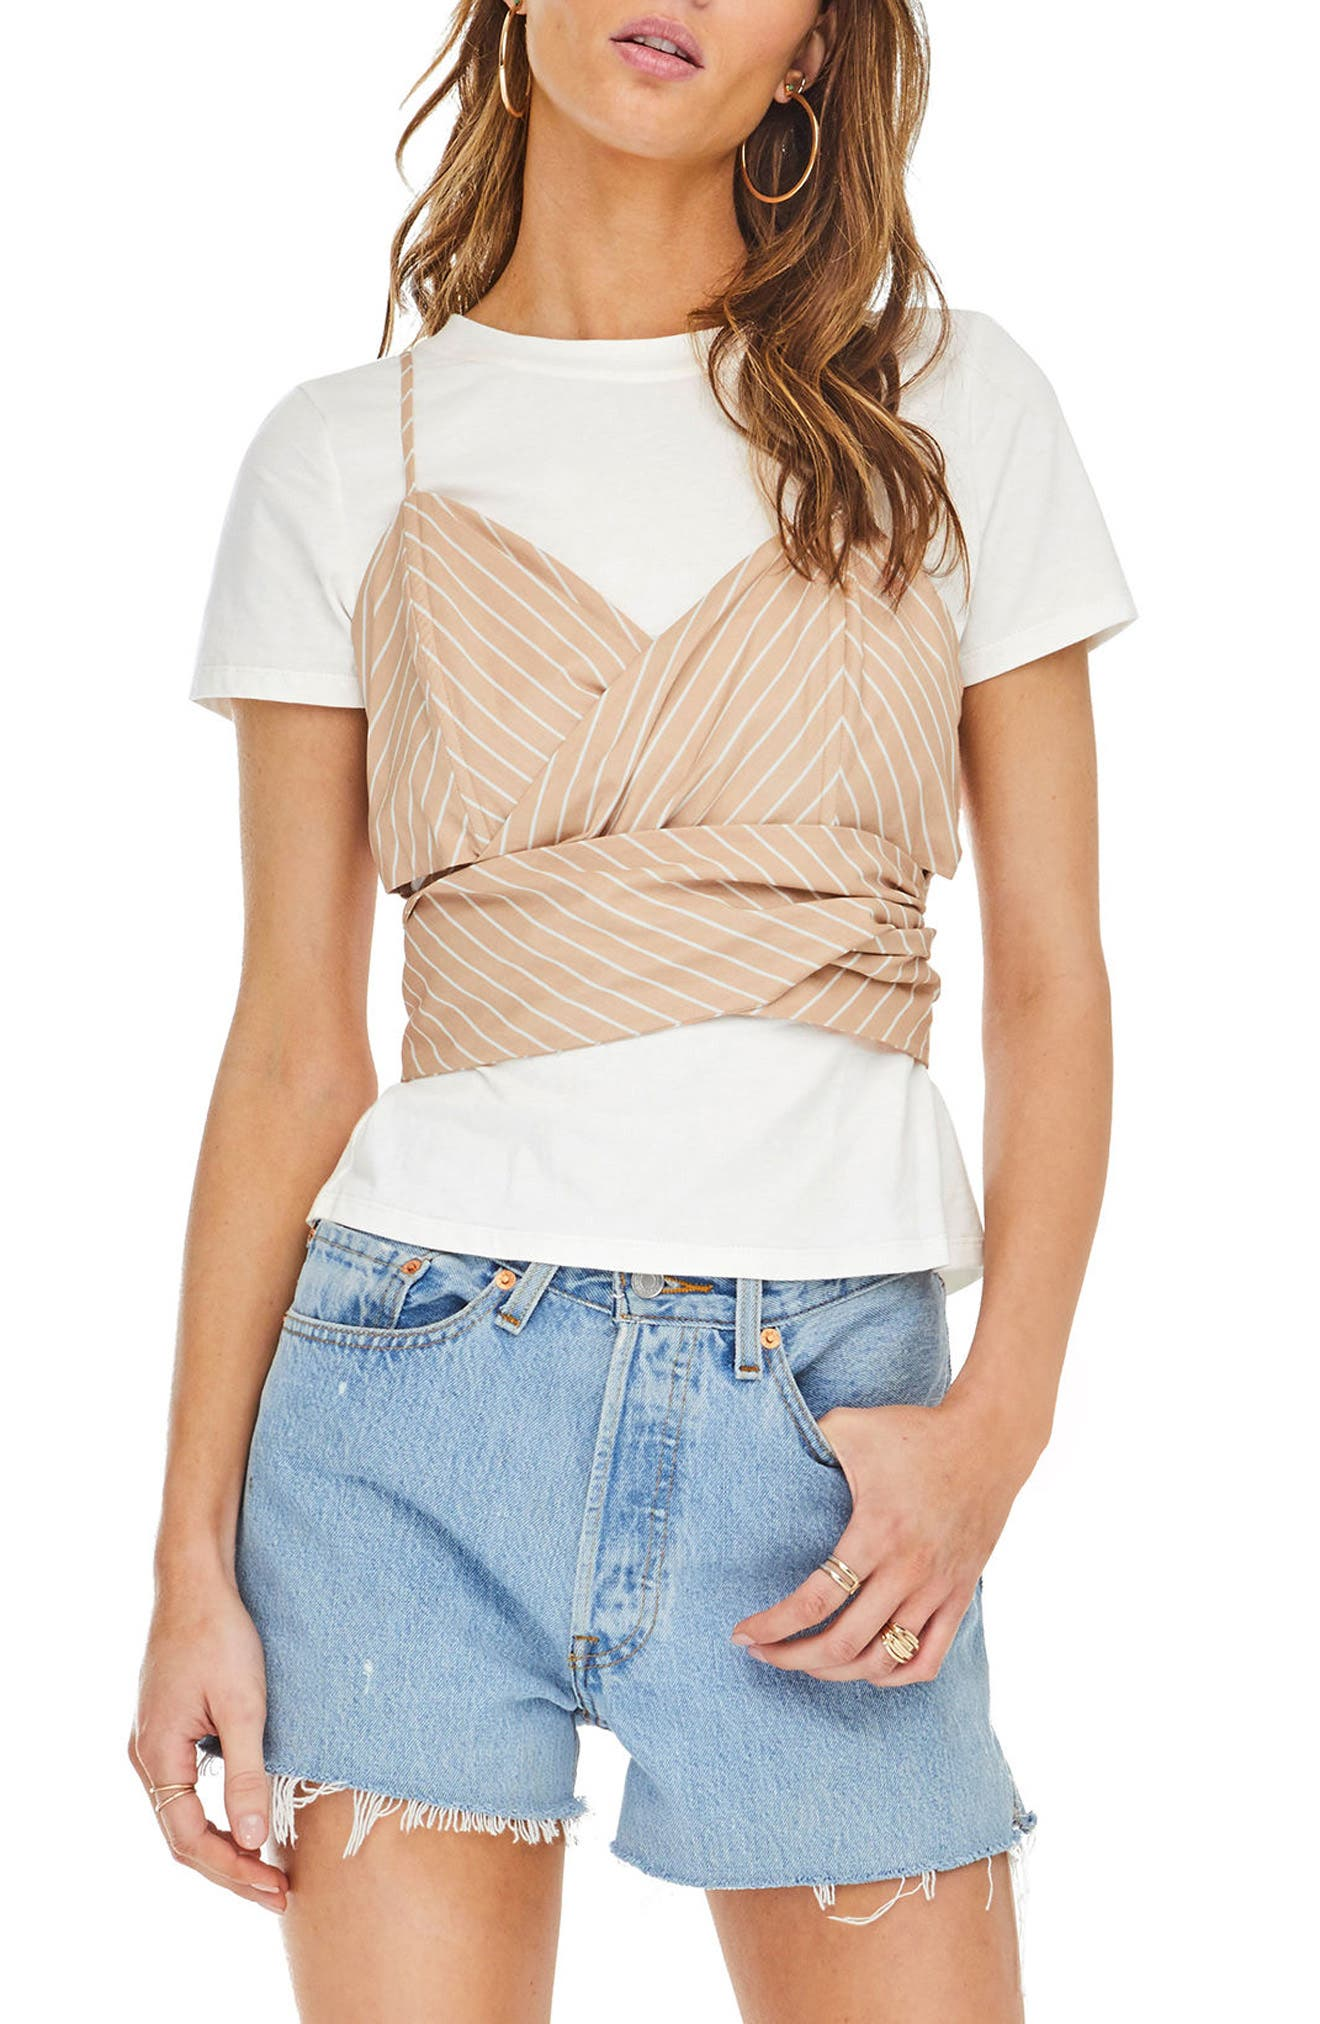 Maddie Layered Look Top,                             Main thumbnail 1, color,                             Dusty Blush Stripe